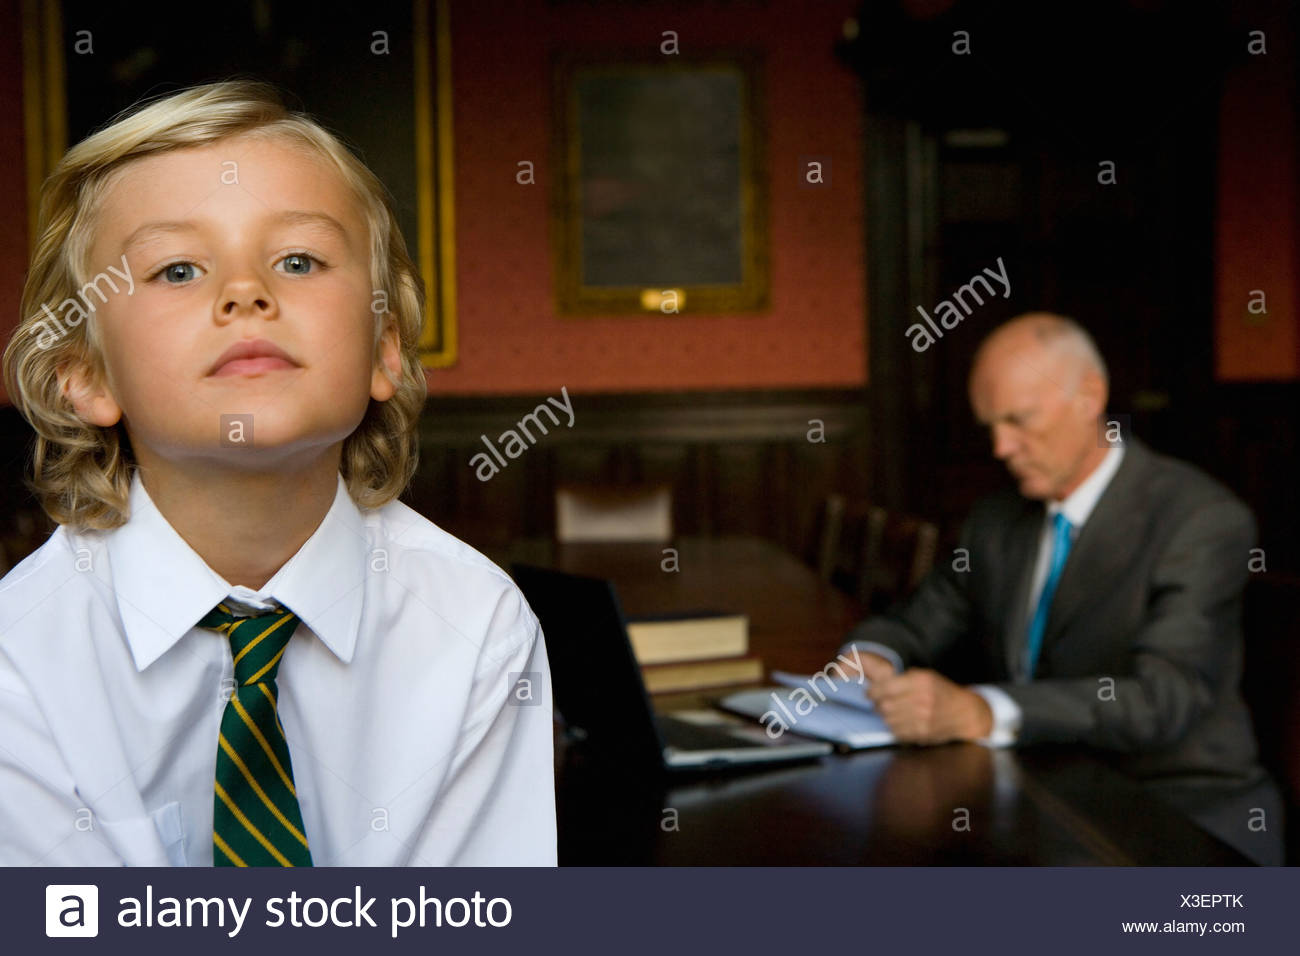 Boy (5-7) in office with father at desk in background Stock Photo